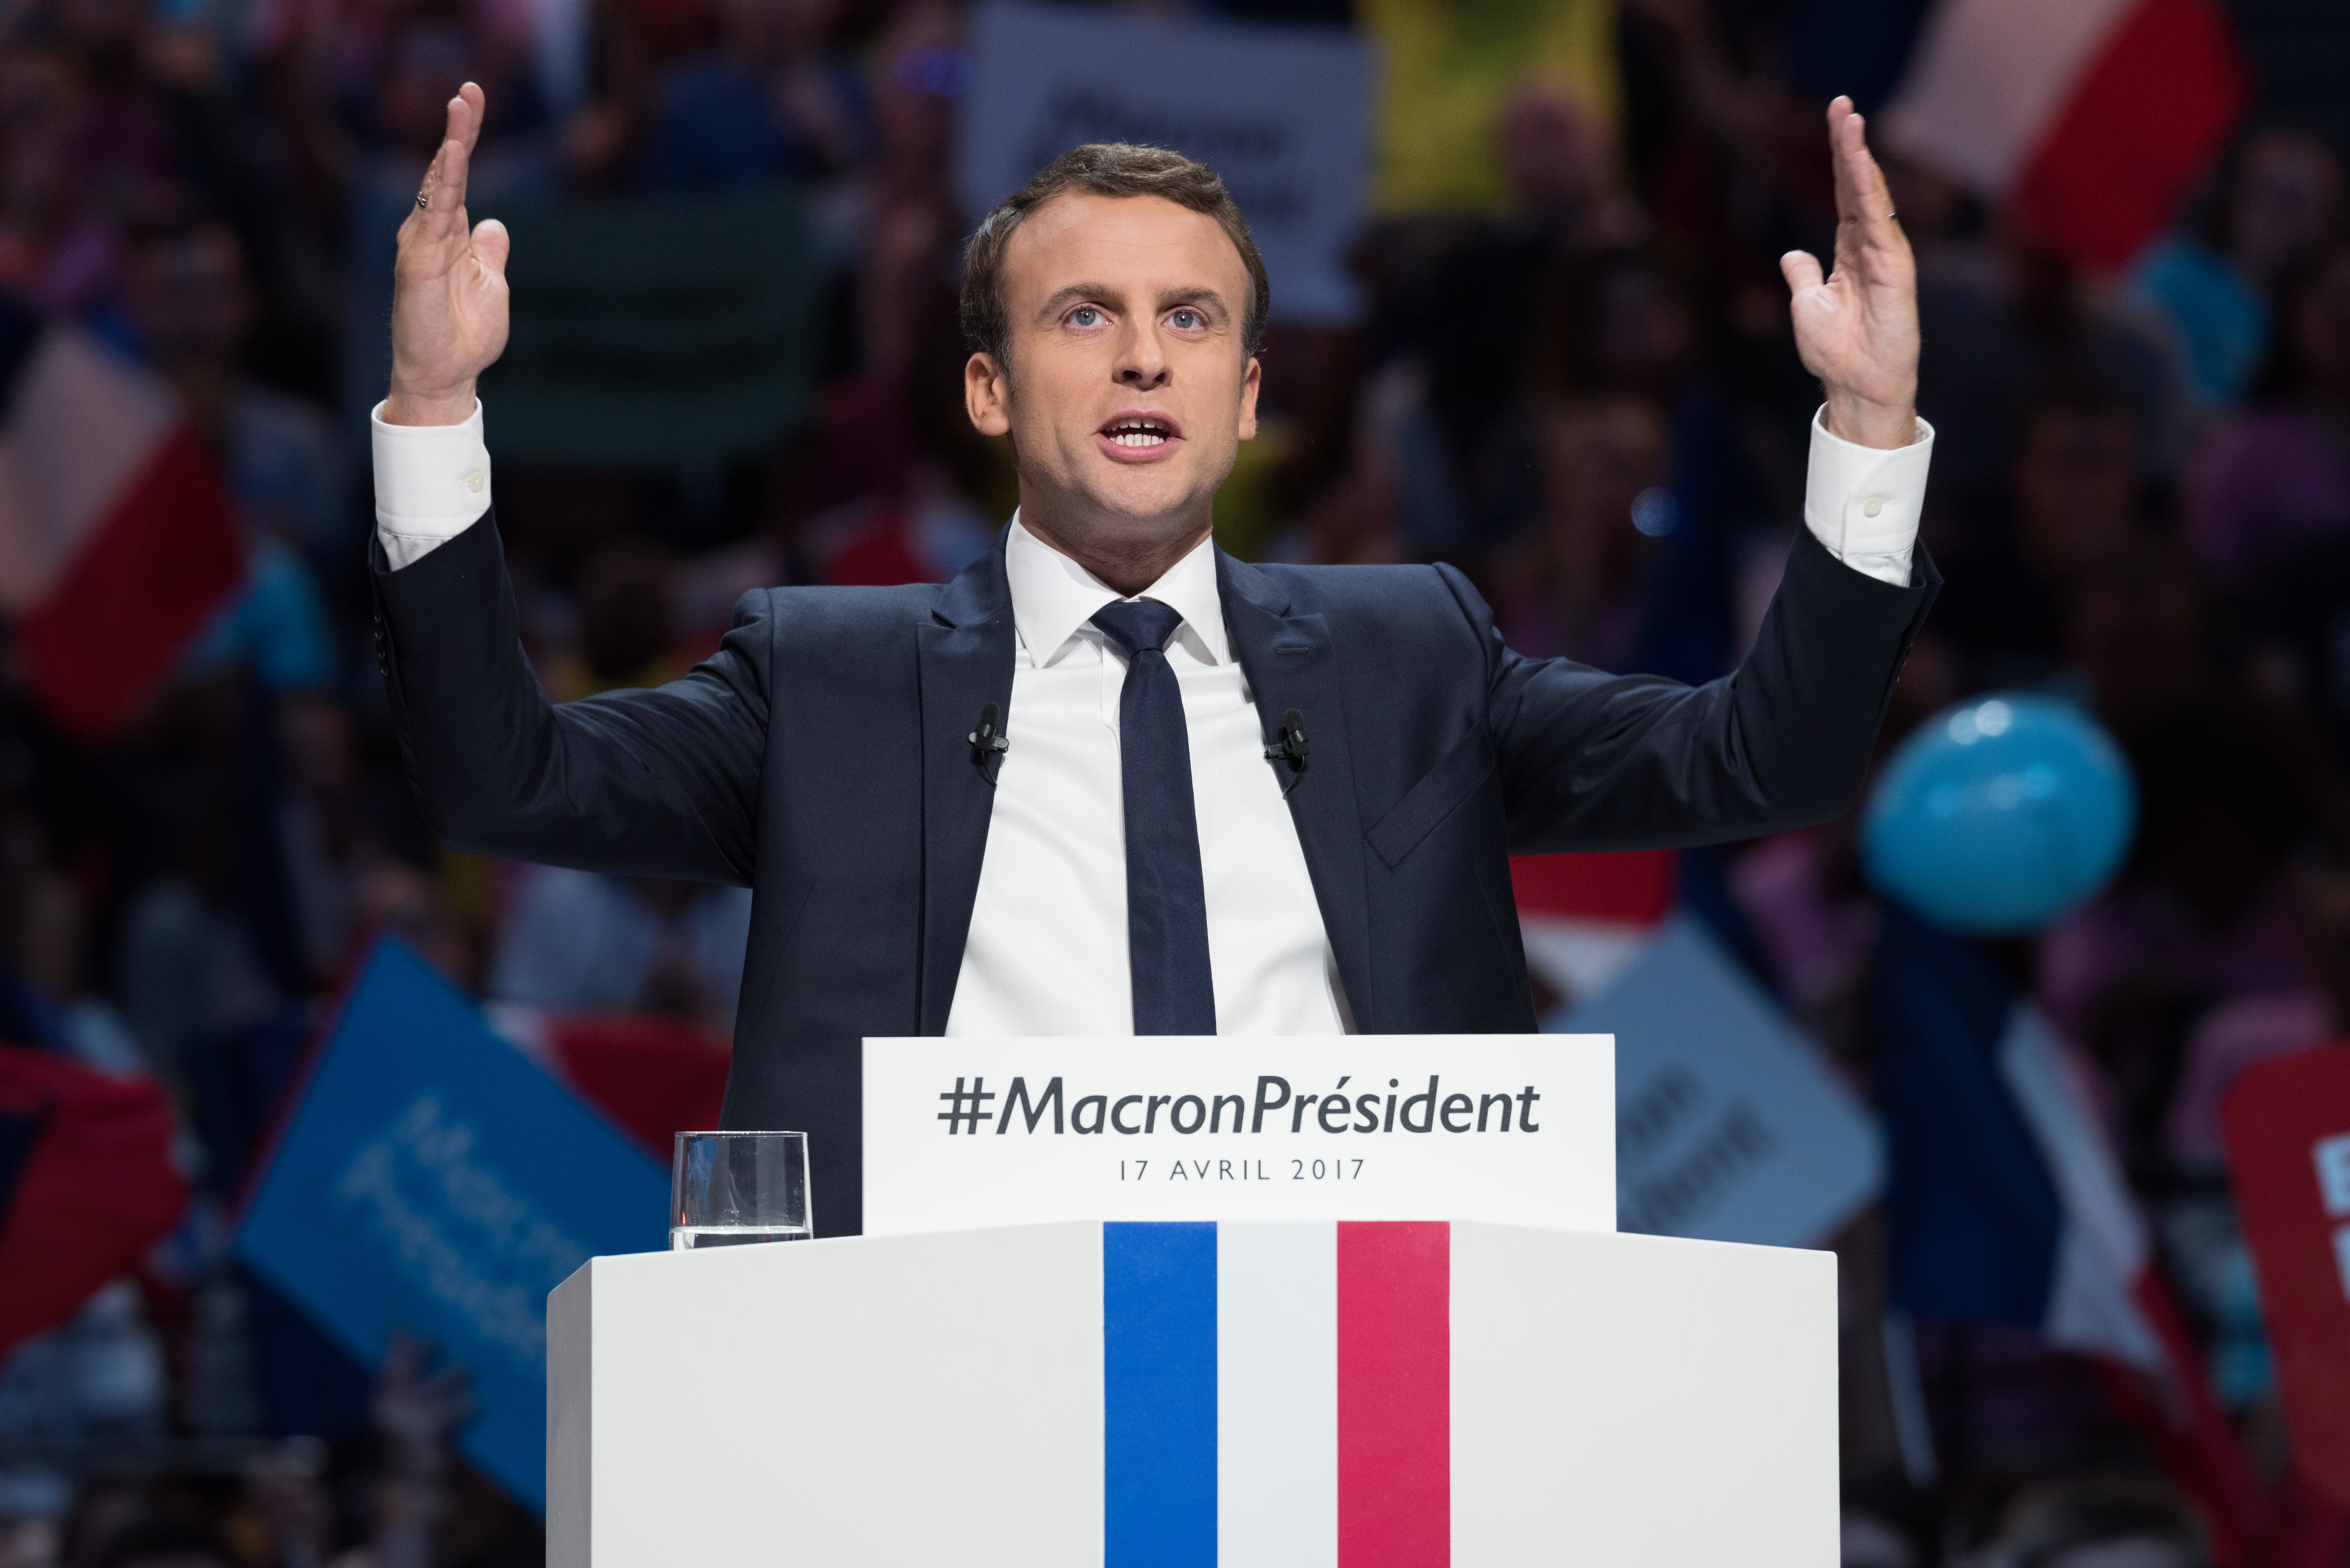 Is France taking control of the European Union? 5 Geopolitical Effects You Need to Know